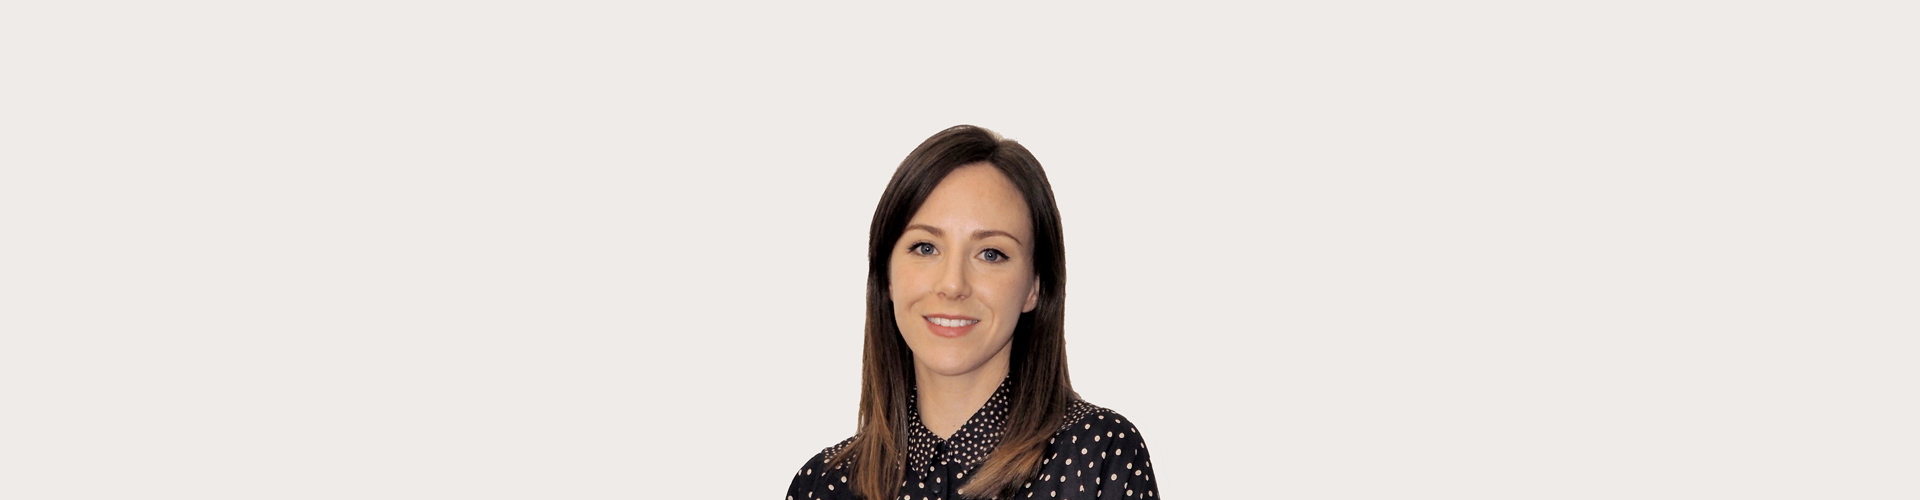 Hood Group appoints innovation manager